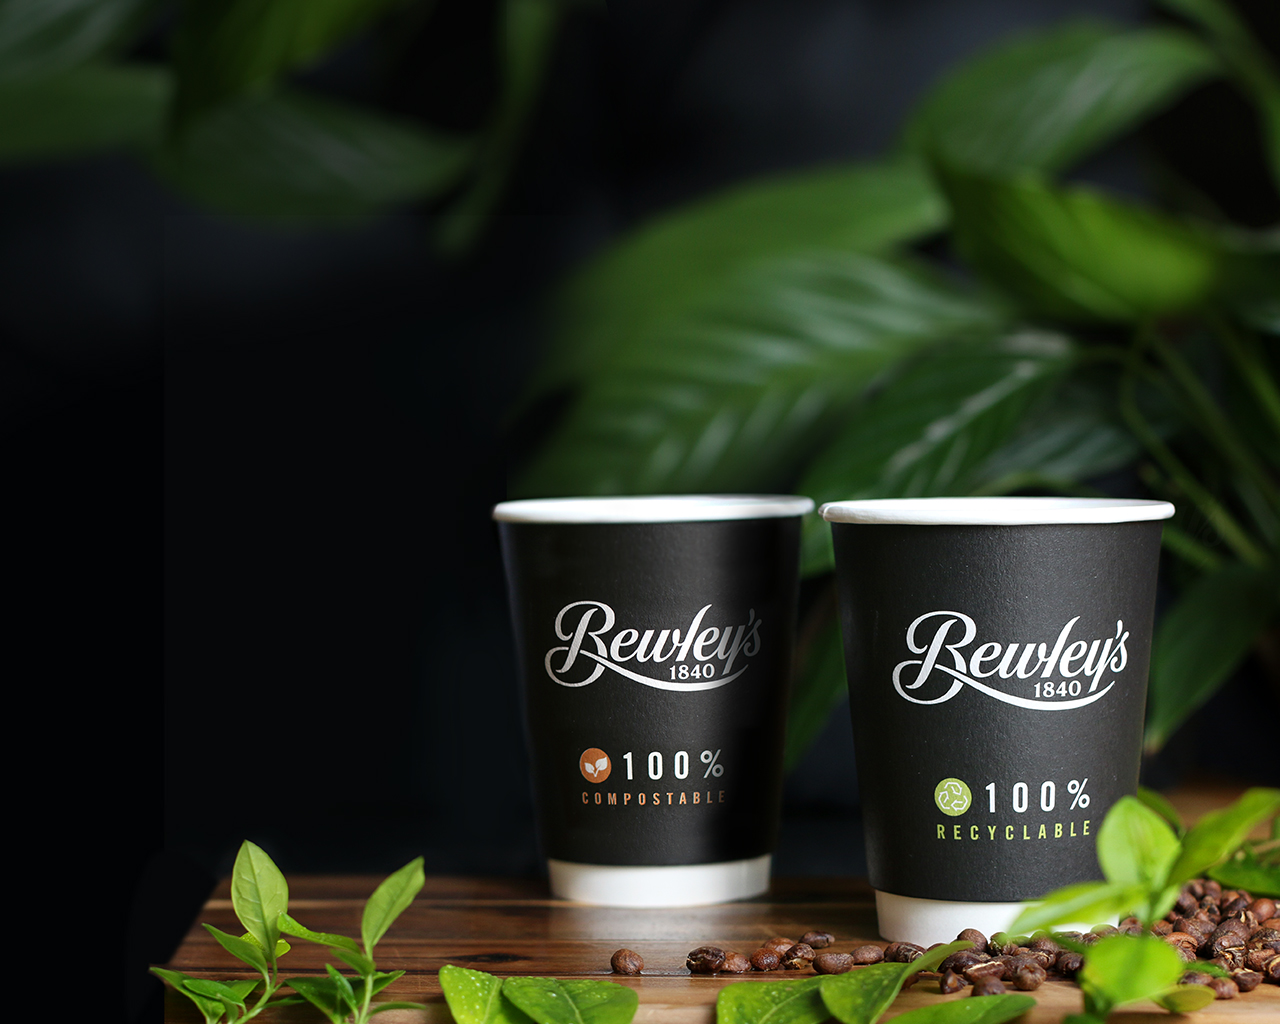 Bewley's Recyclable Compostable Takeaway Coffee Cups Design